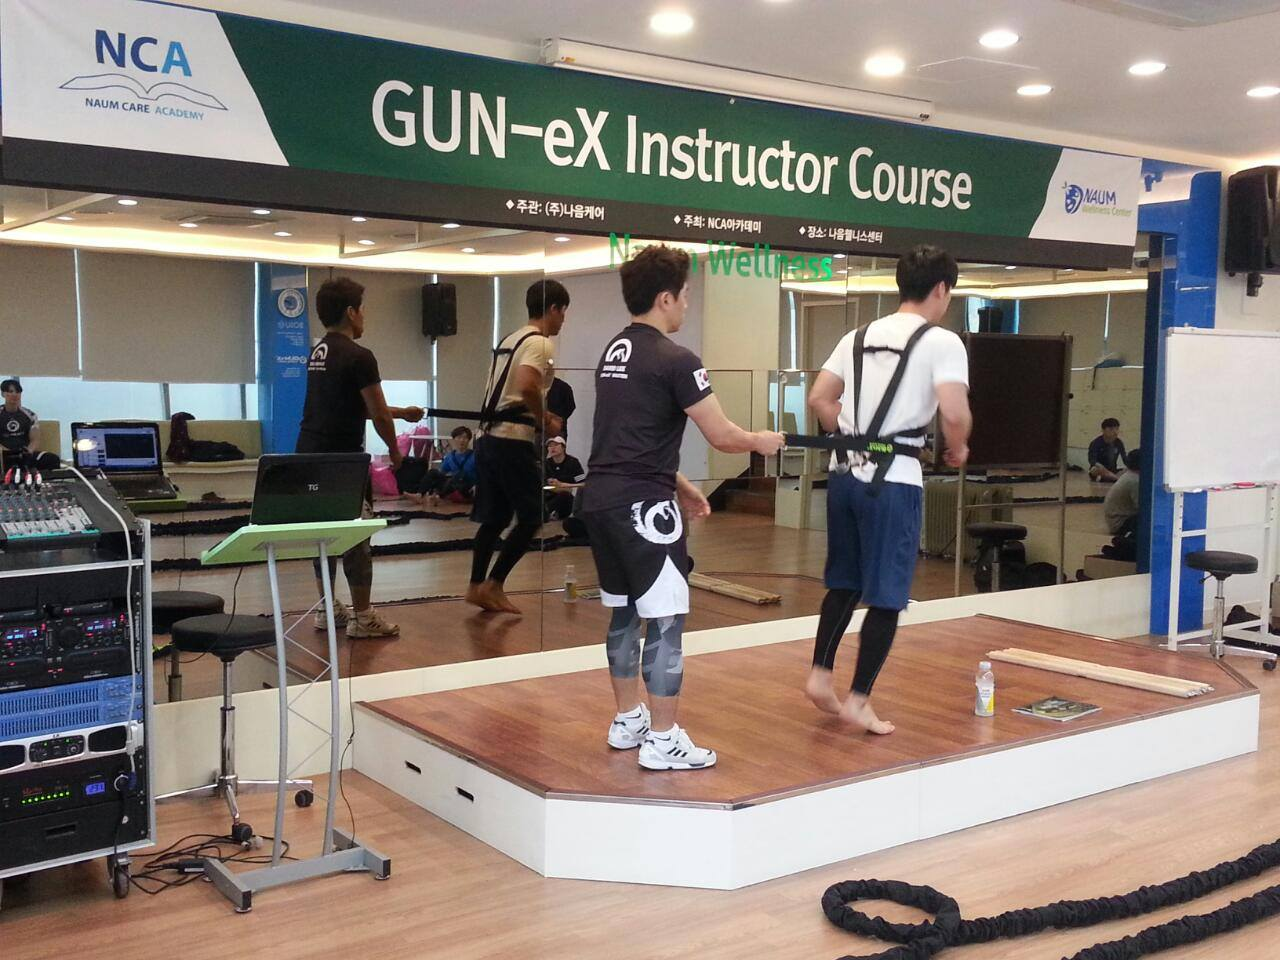 2016 GUN-eX Instructor Course